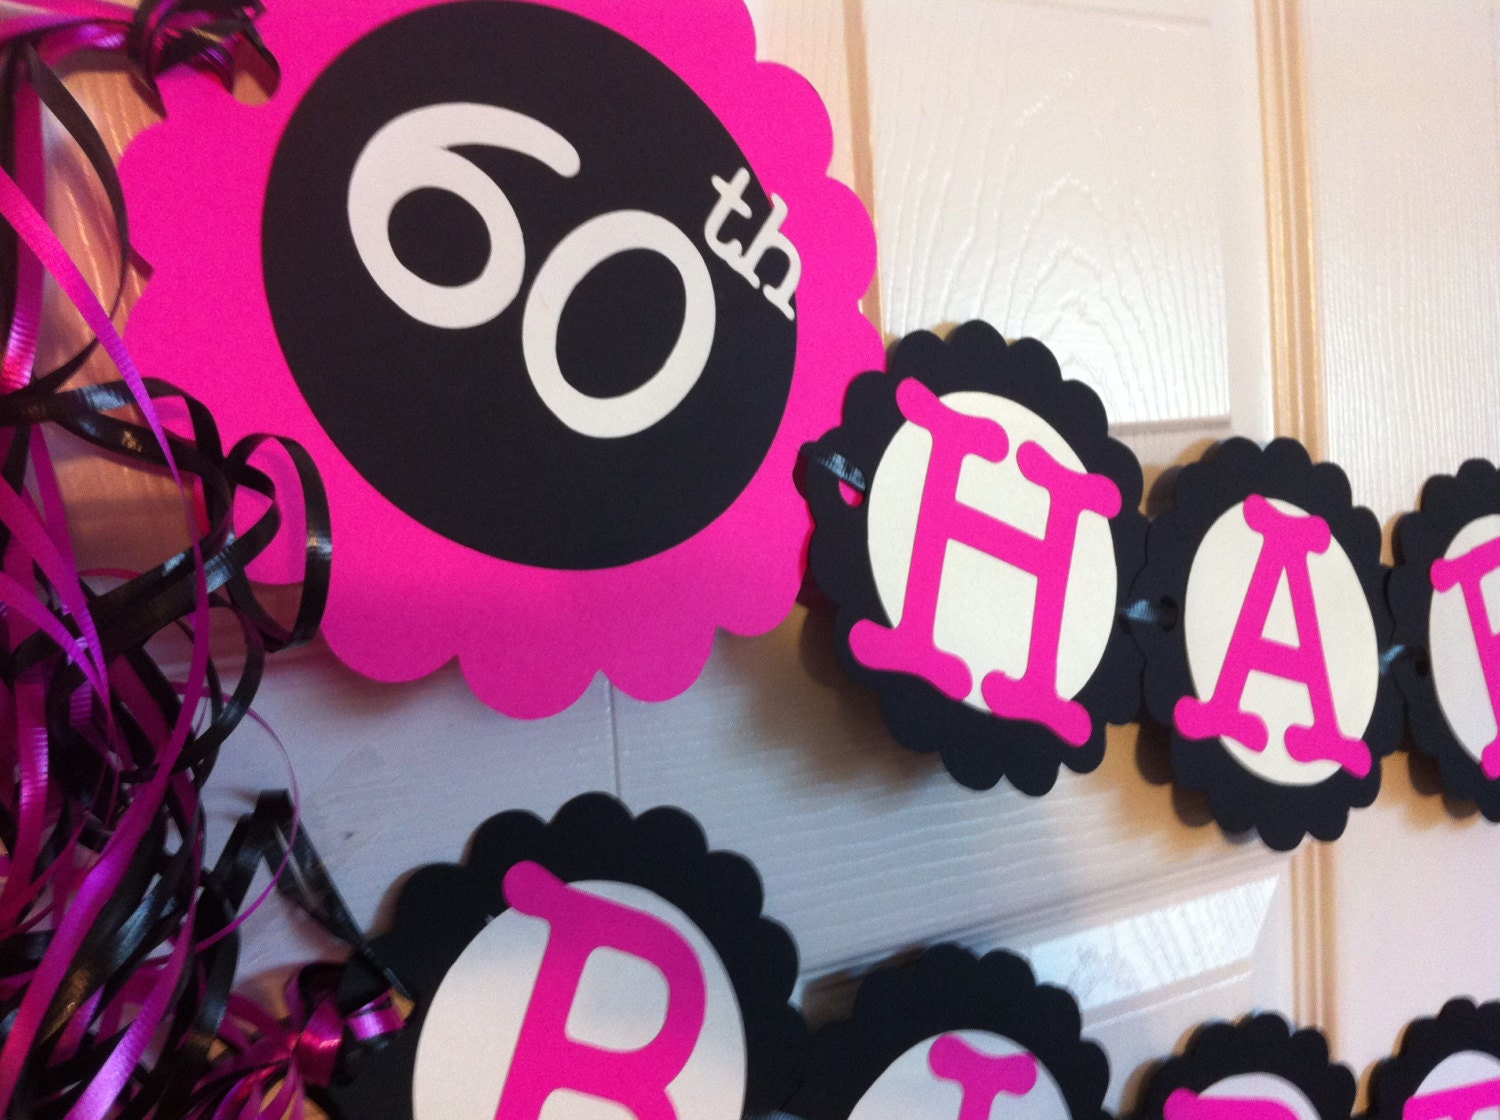 60th Birthday Color Ideas: 60th Birthday Decorations Personalization Available